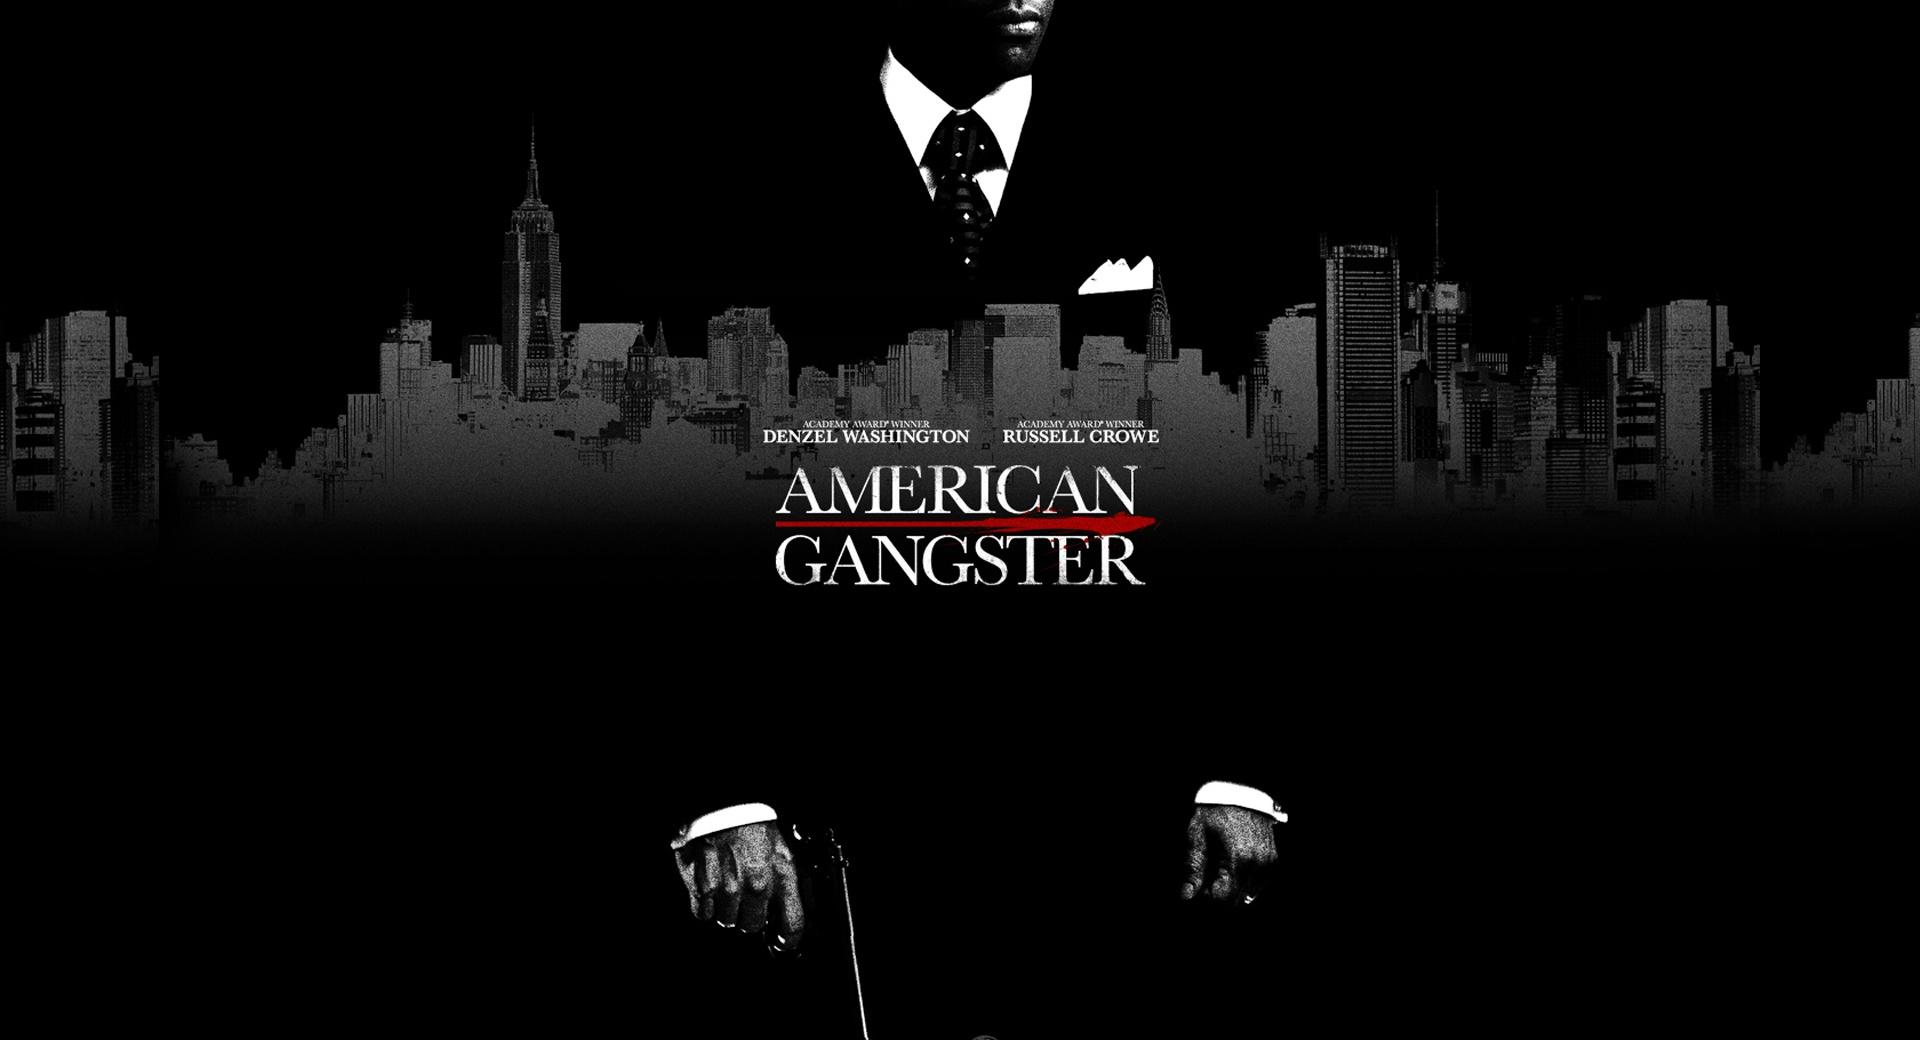 American Gangster 1 at 1024 x 1024 iPad size wallpapers HD quality